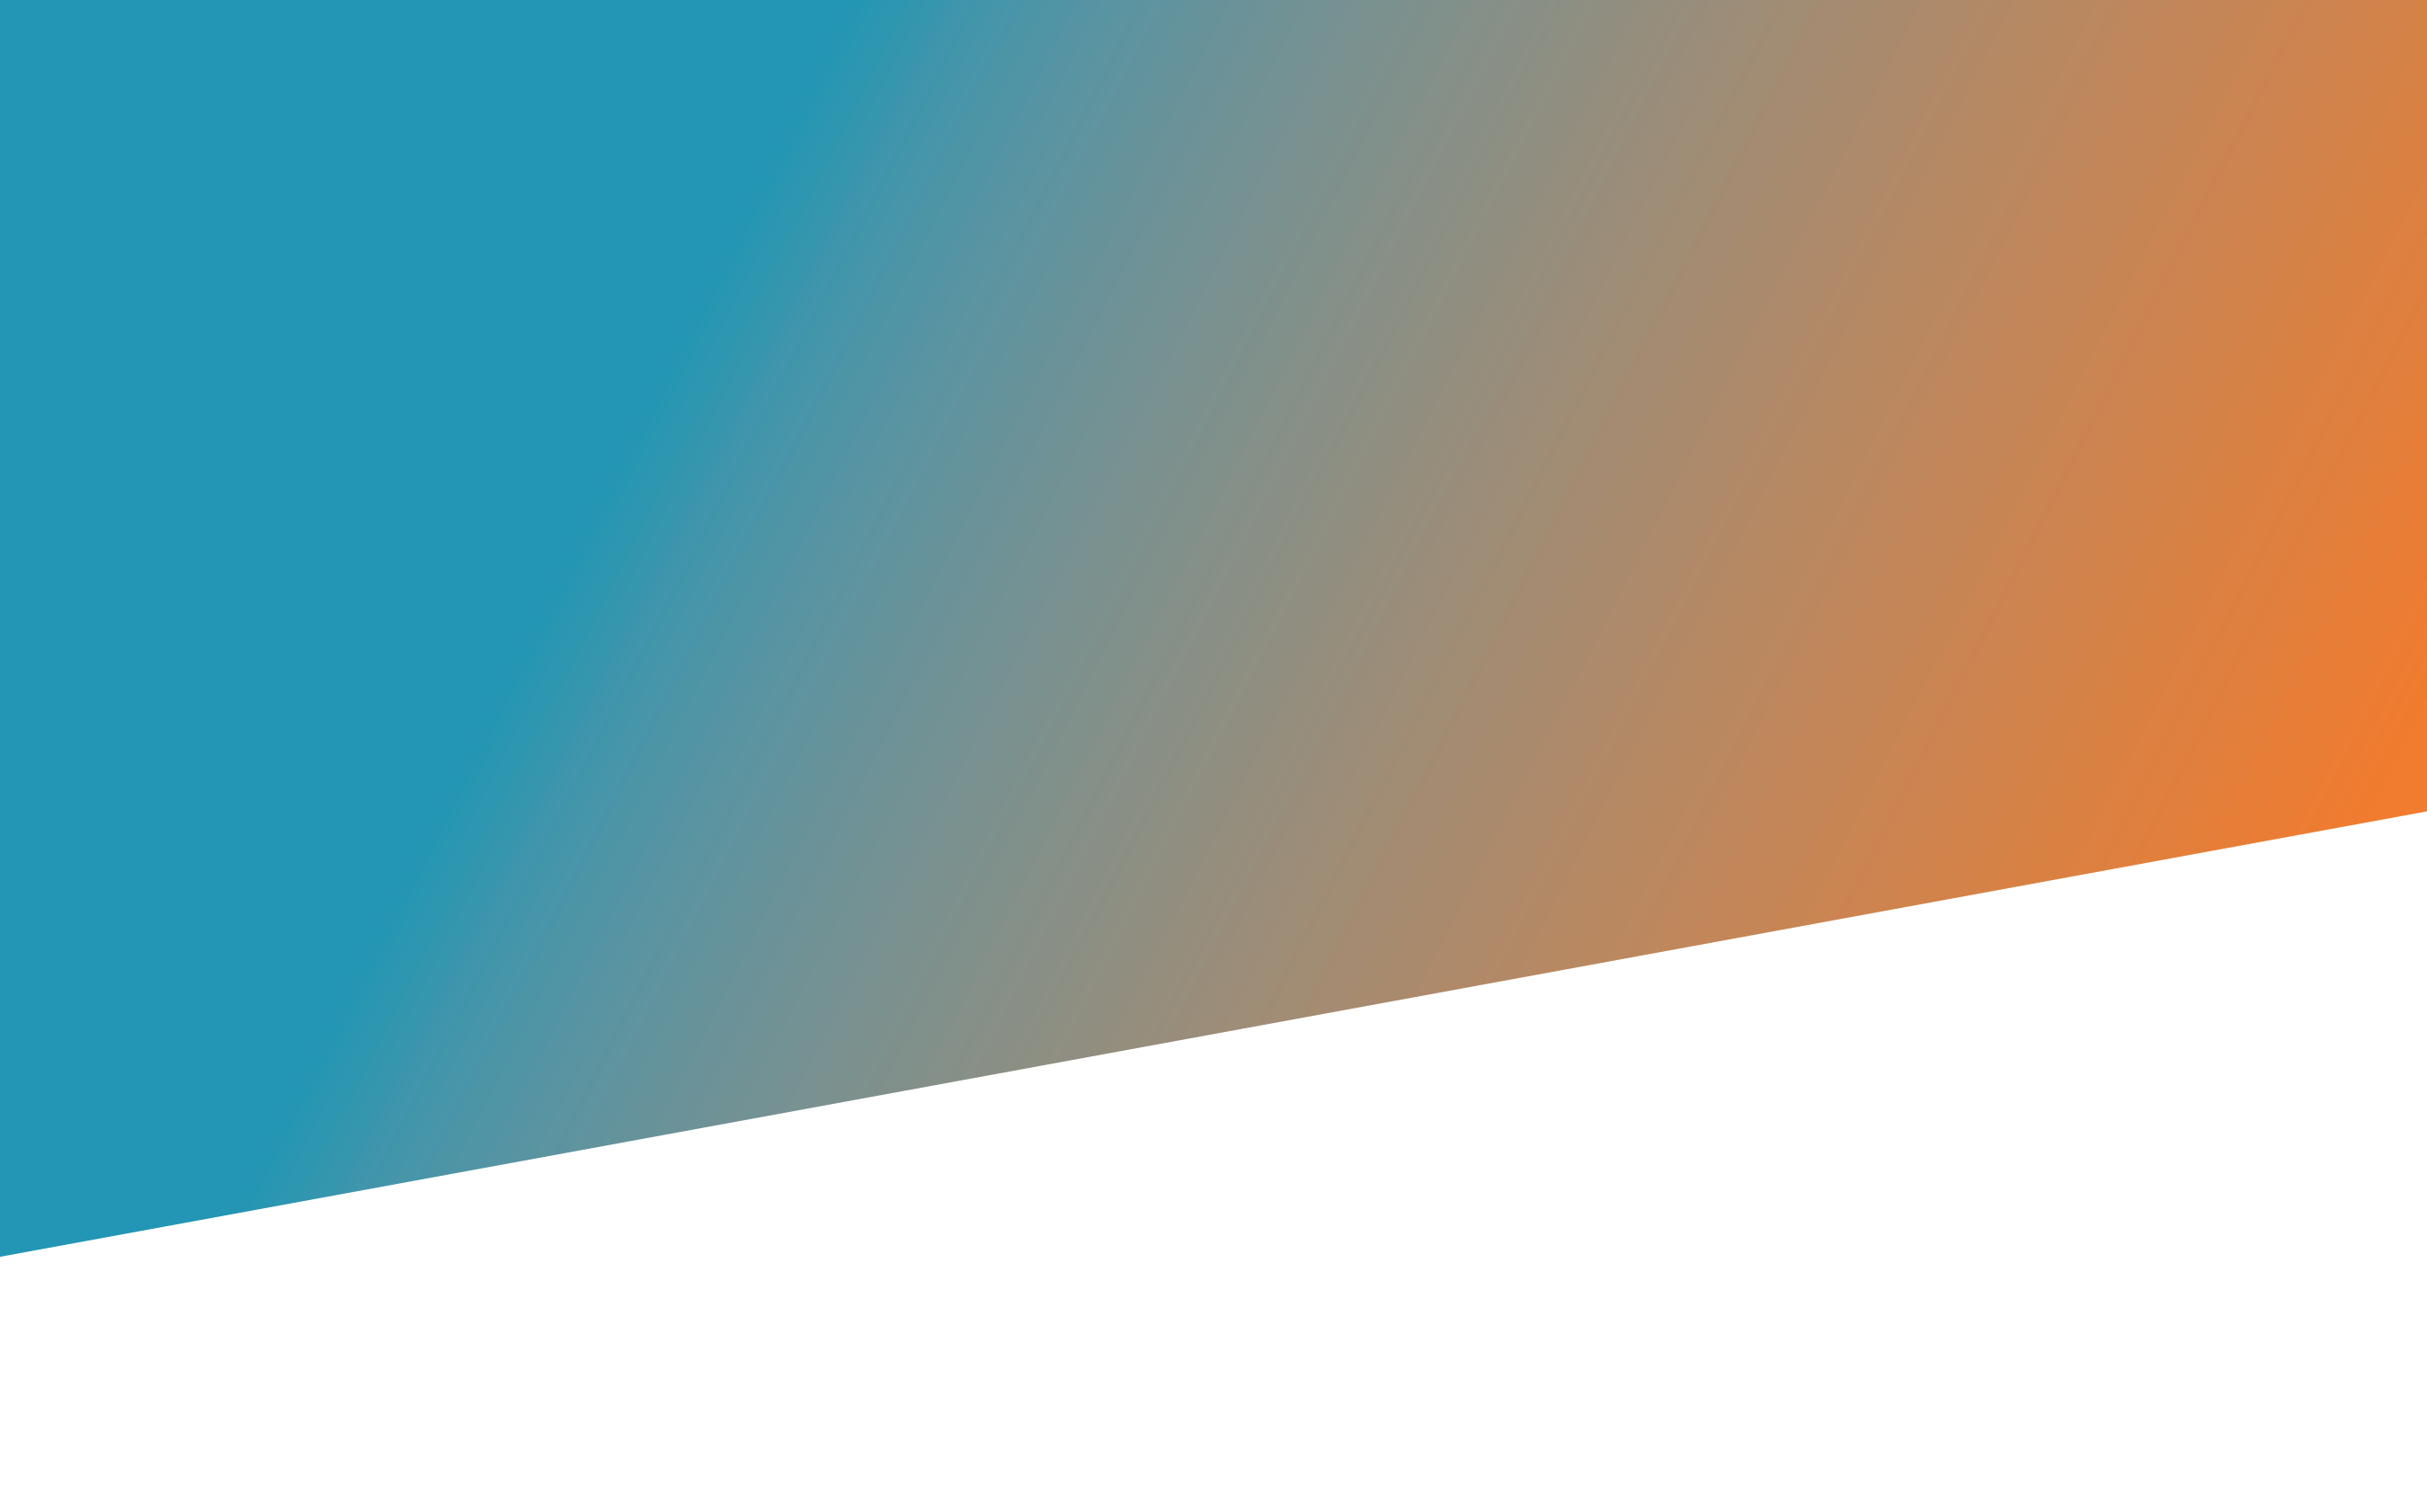 cognidox-main-full-height-banner-2.png